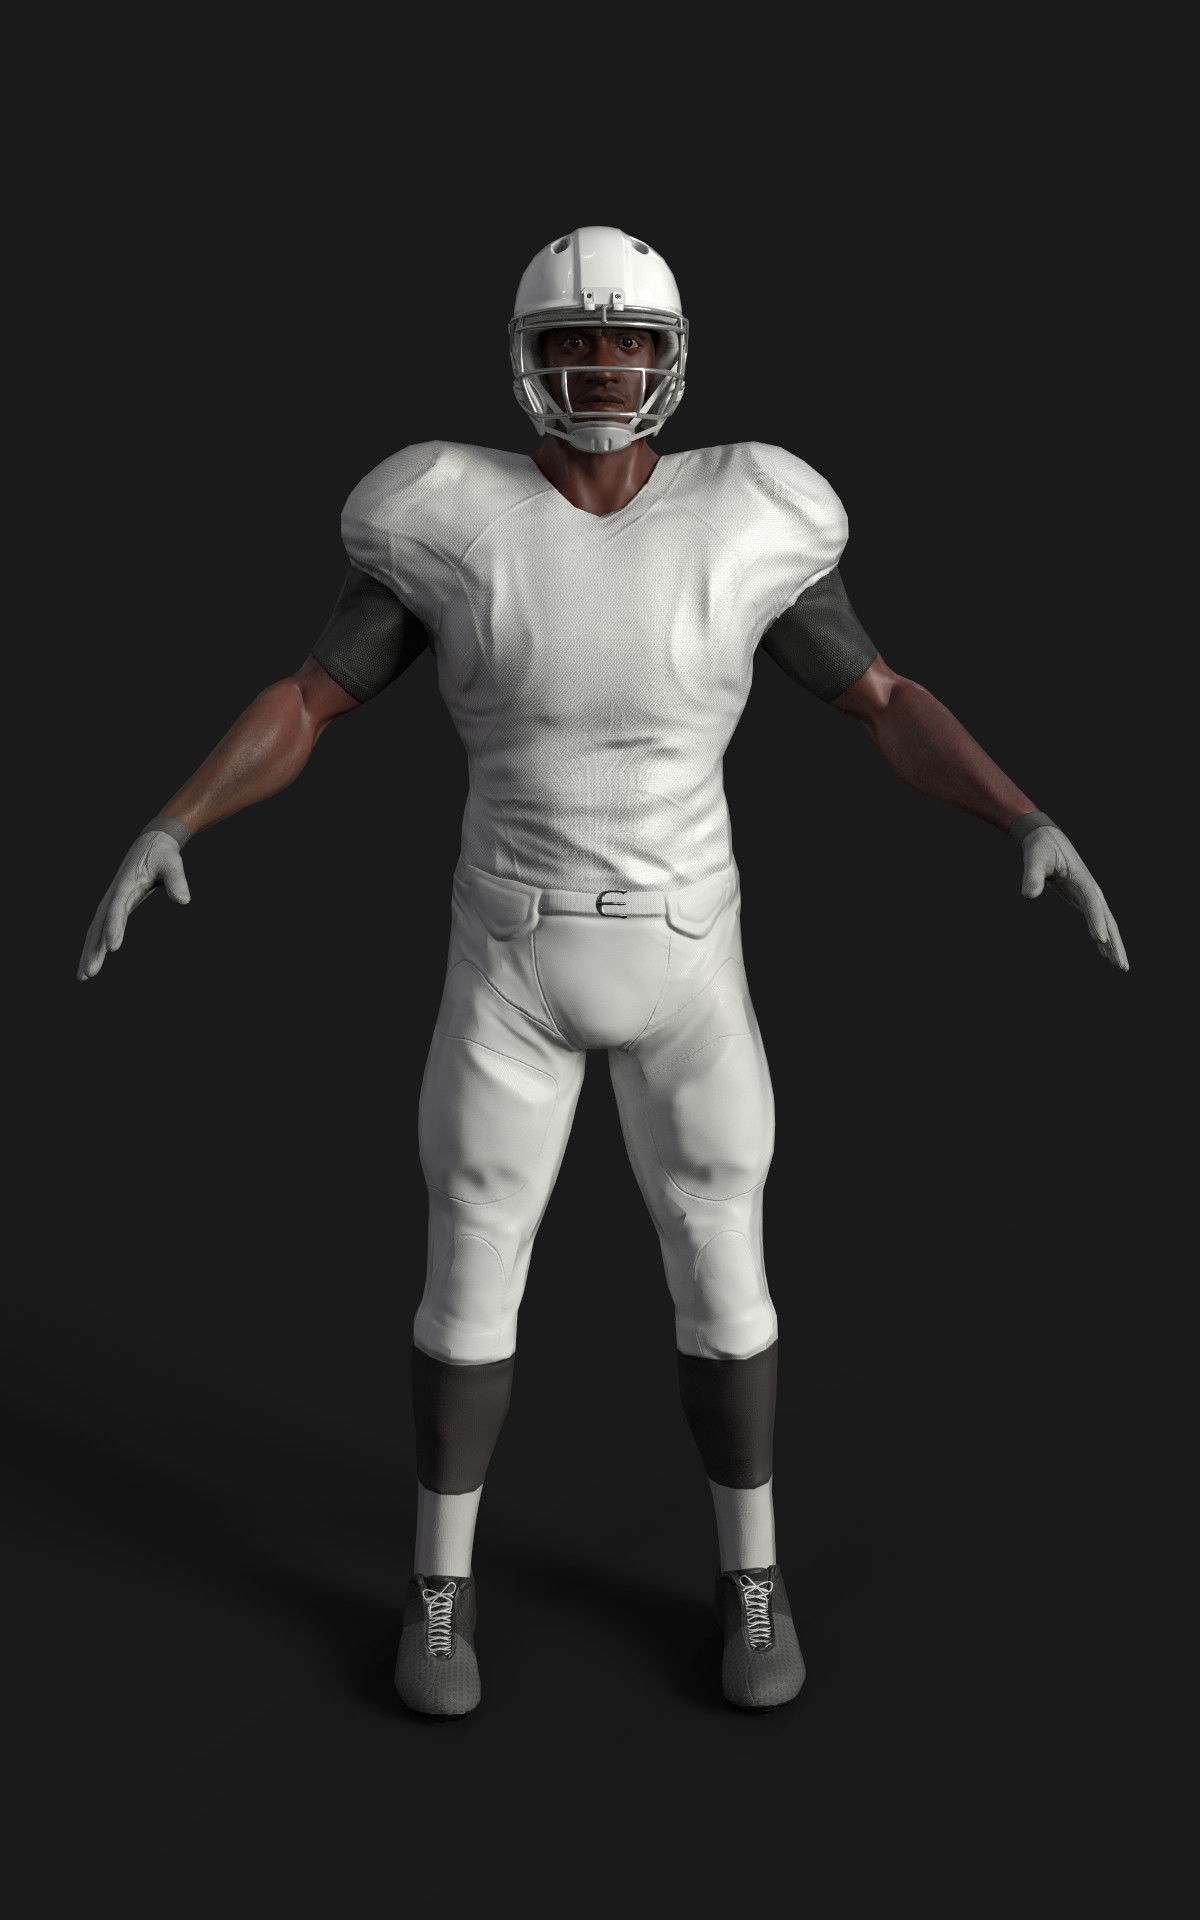 Game ready football player